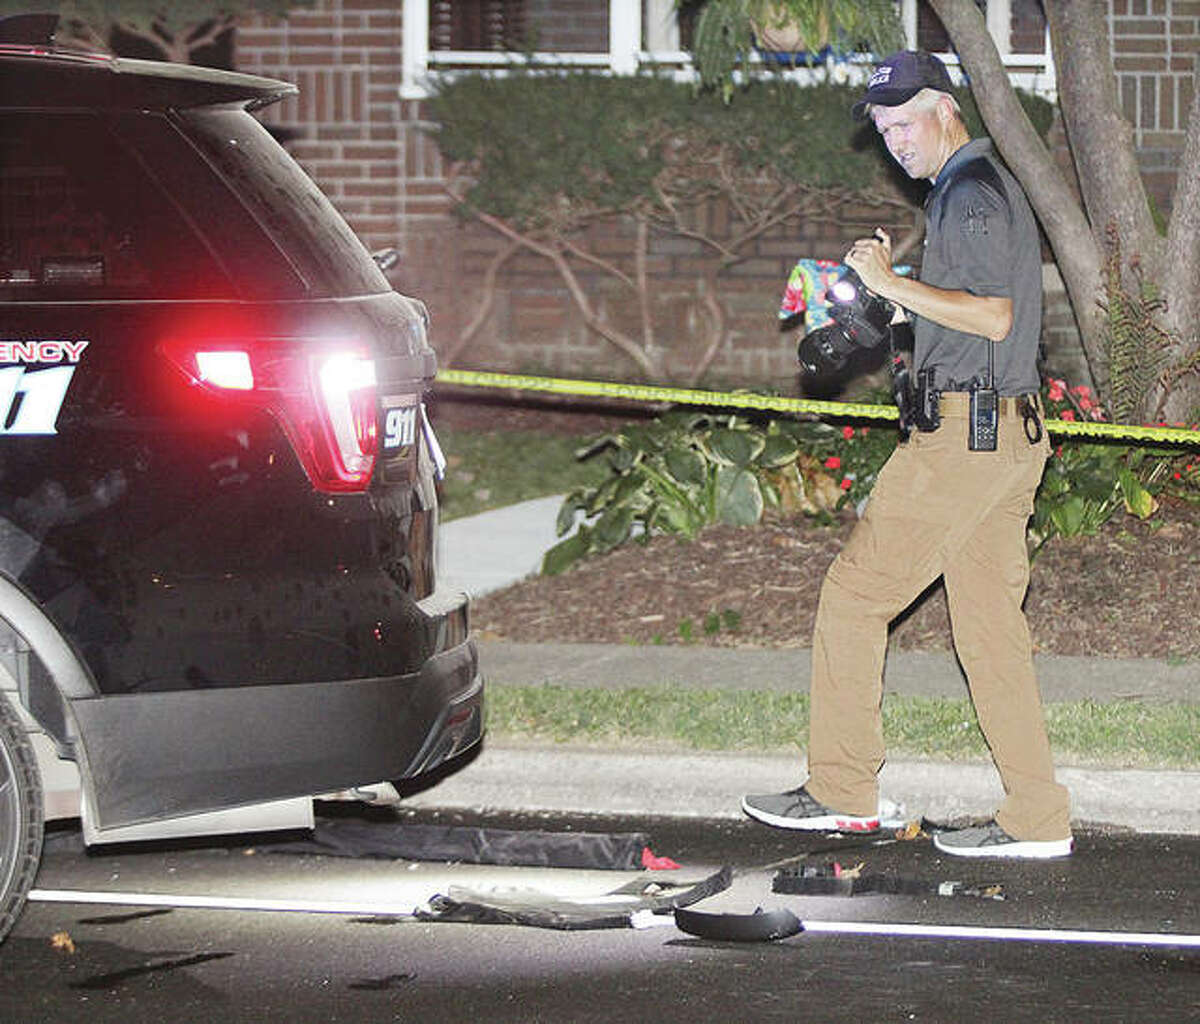 An Alton Police officer walks past debris on Washington Avenue near a police car early Saturday morning where an Alton Police officer was struck by a car fleeing police. On Monday charges were filed against an Alton woman and two men from St. Louis in connection to the incident.